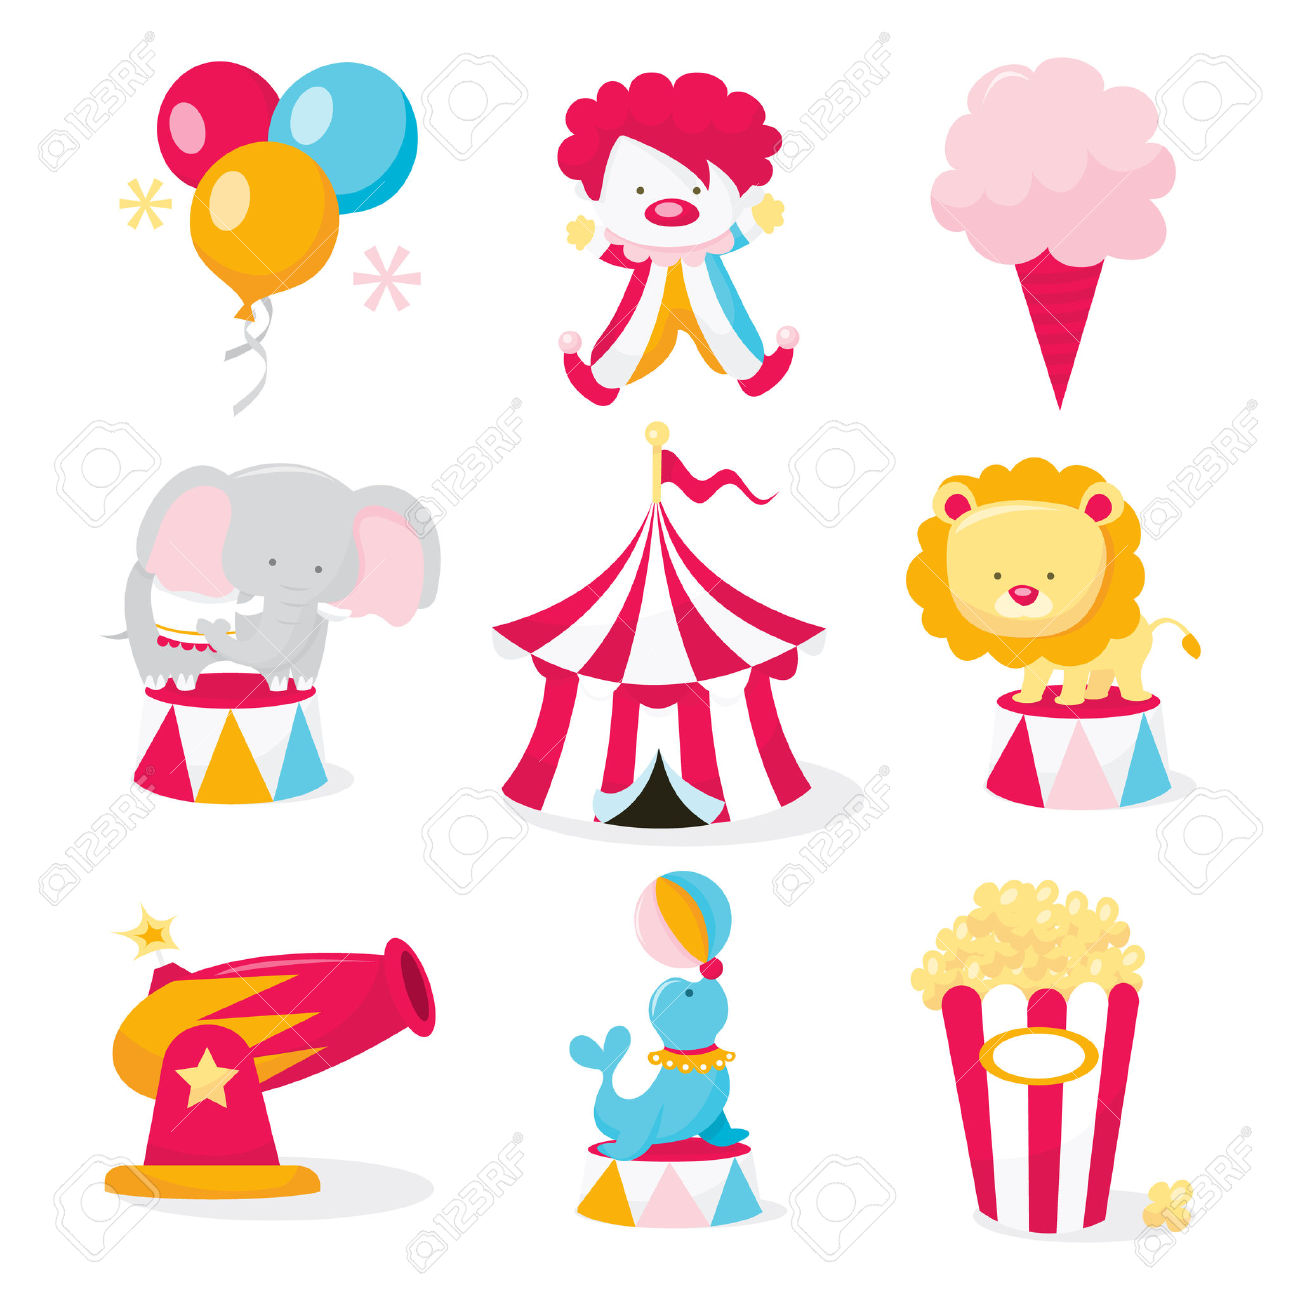 Circus themed clipart clipground - Clipart carnaval ...